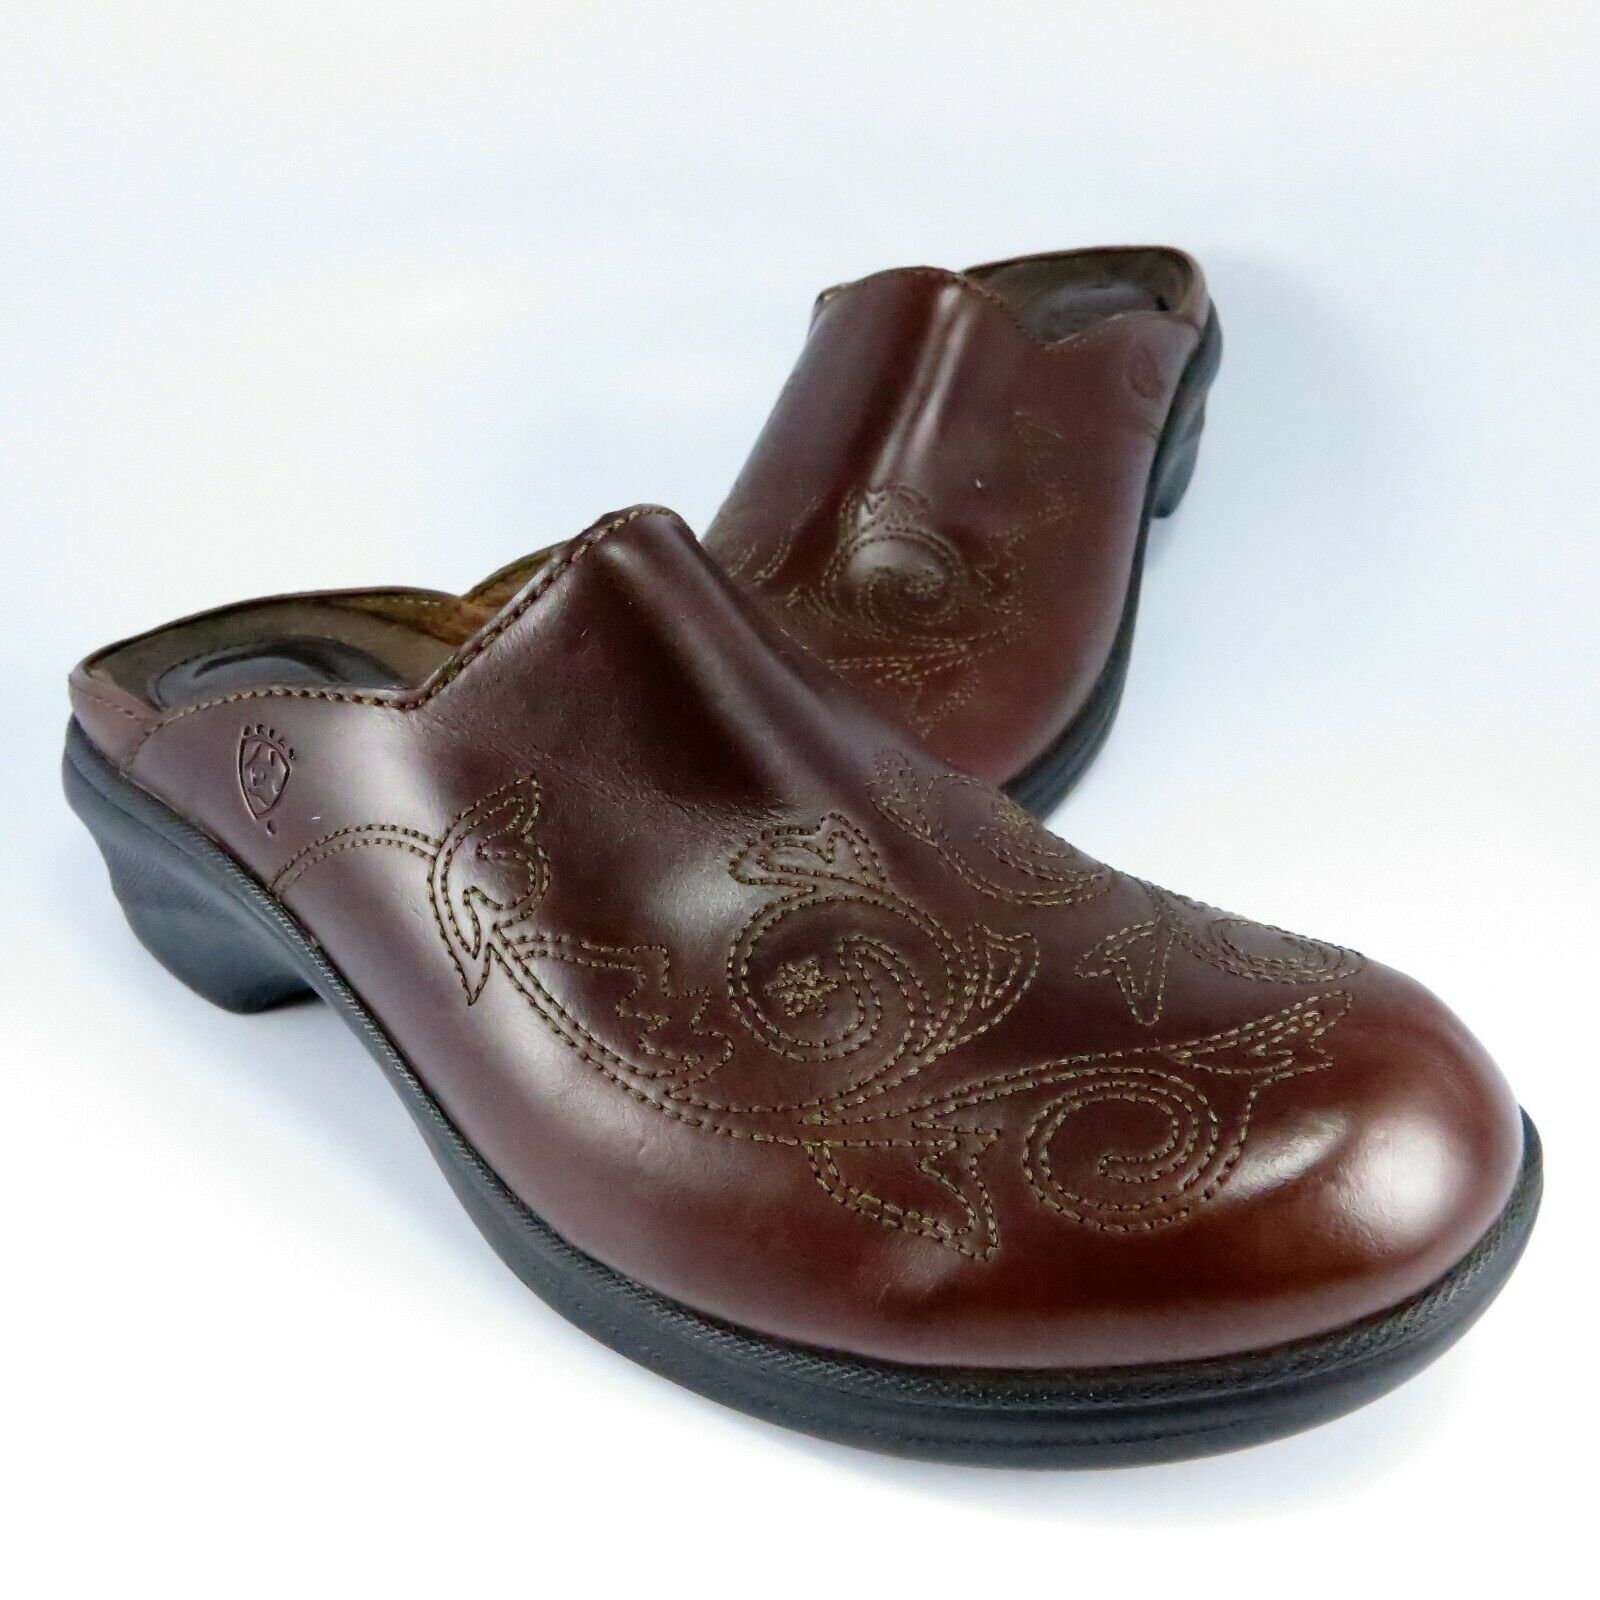 Ariat SAVANNAH Embroidered Mules-Clogs Womens Size 8B Burgundy Leather Slides